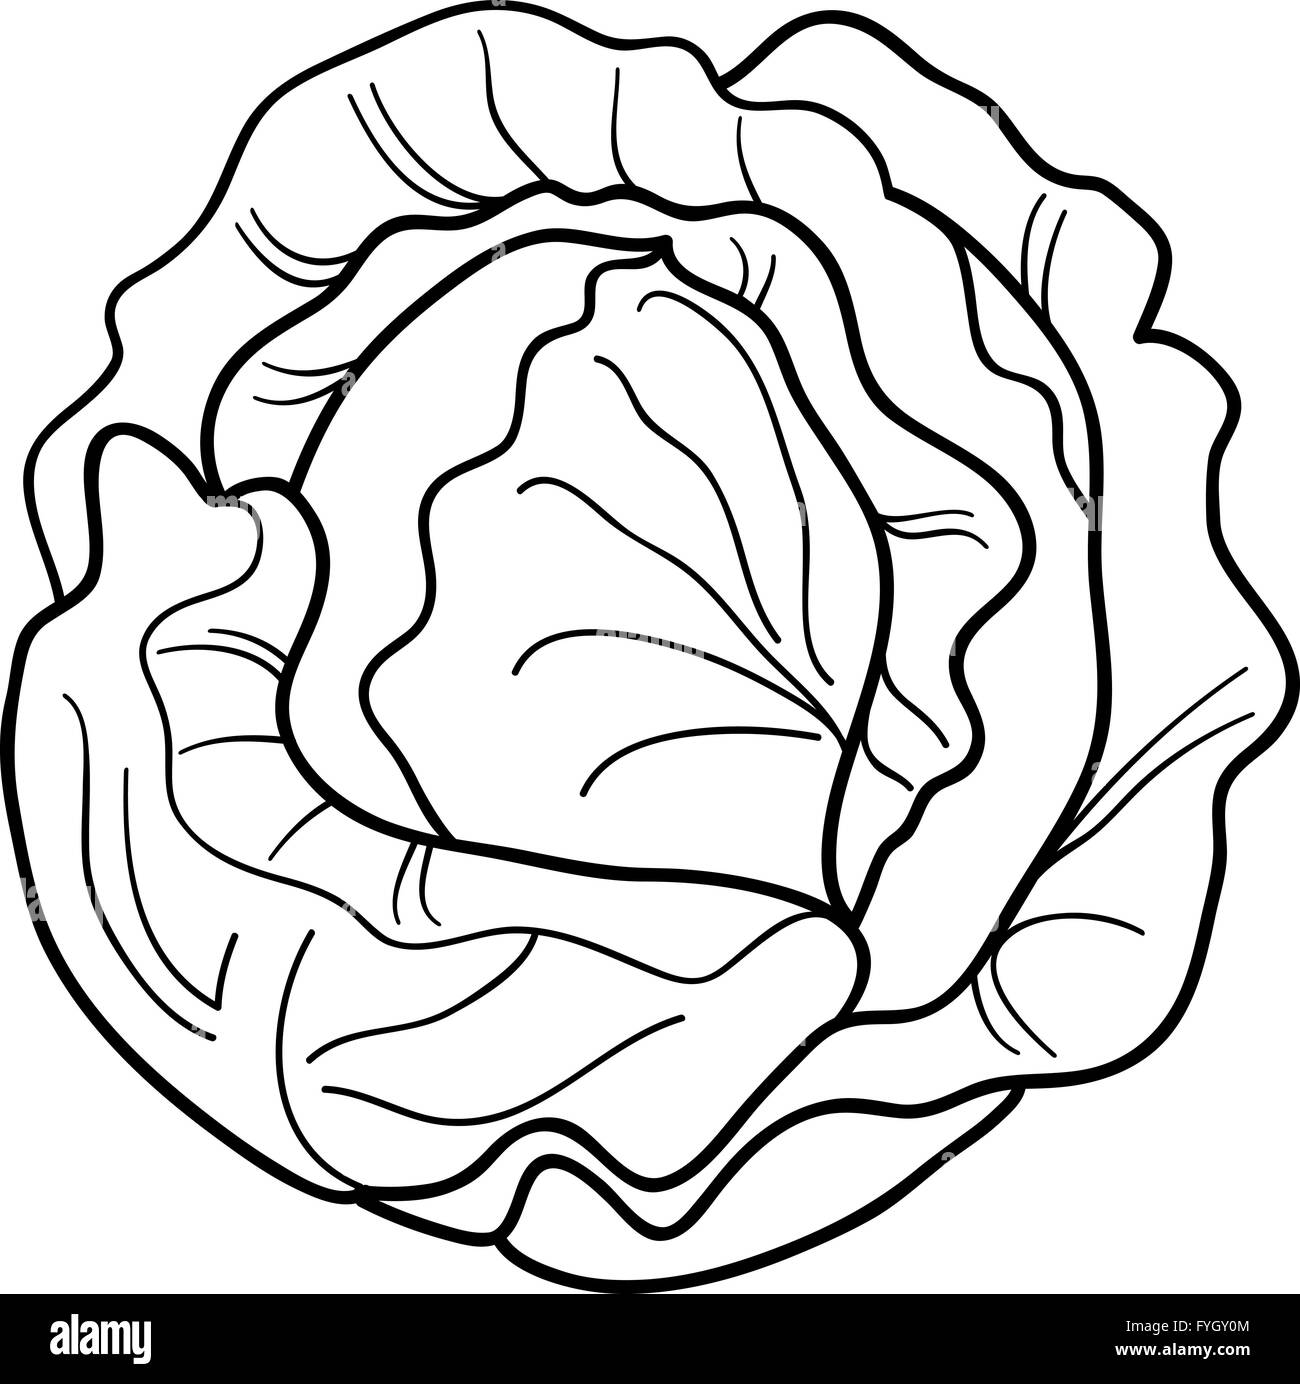 Cabbage Vegetable Cartoon For Coloring Book Stock Photo 103019972